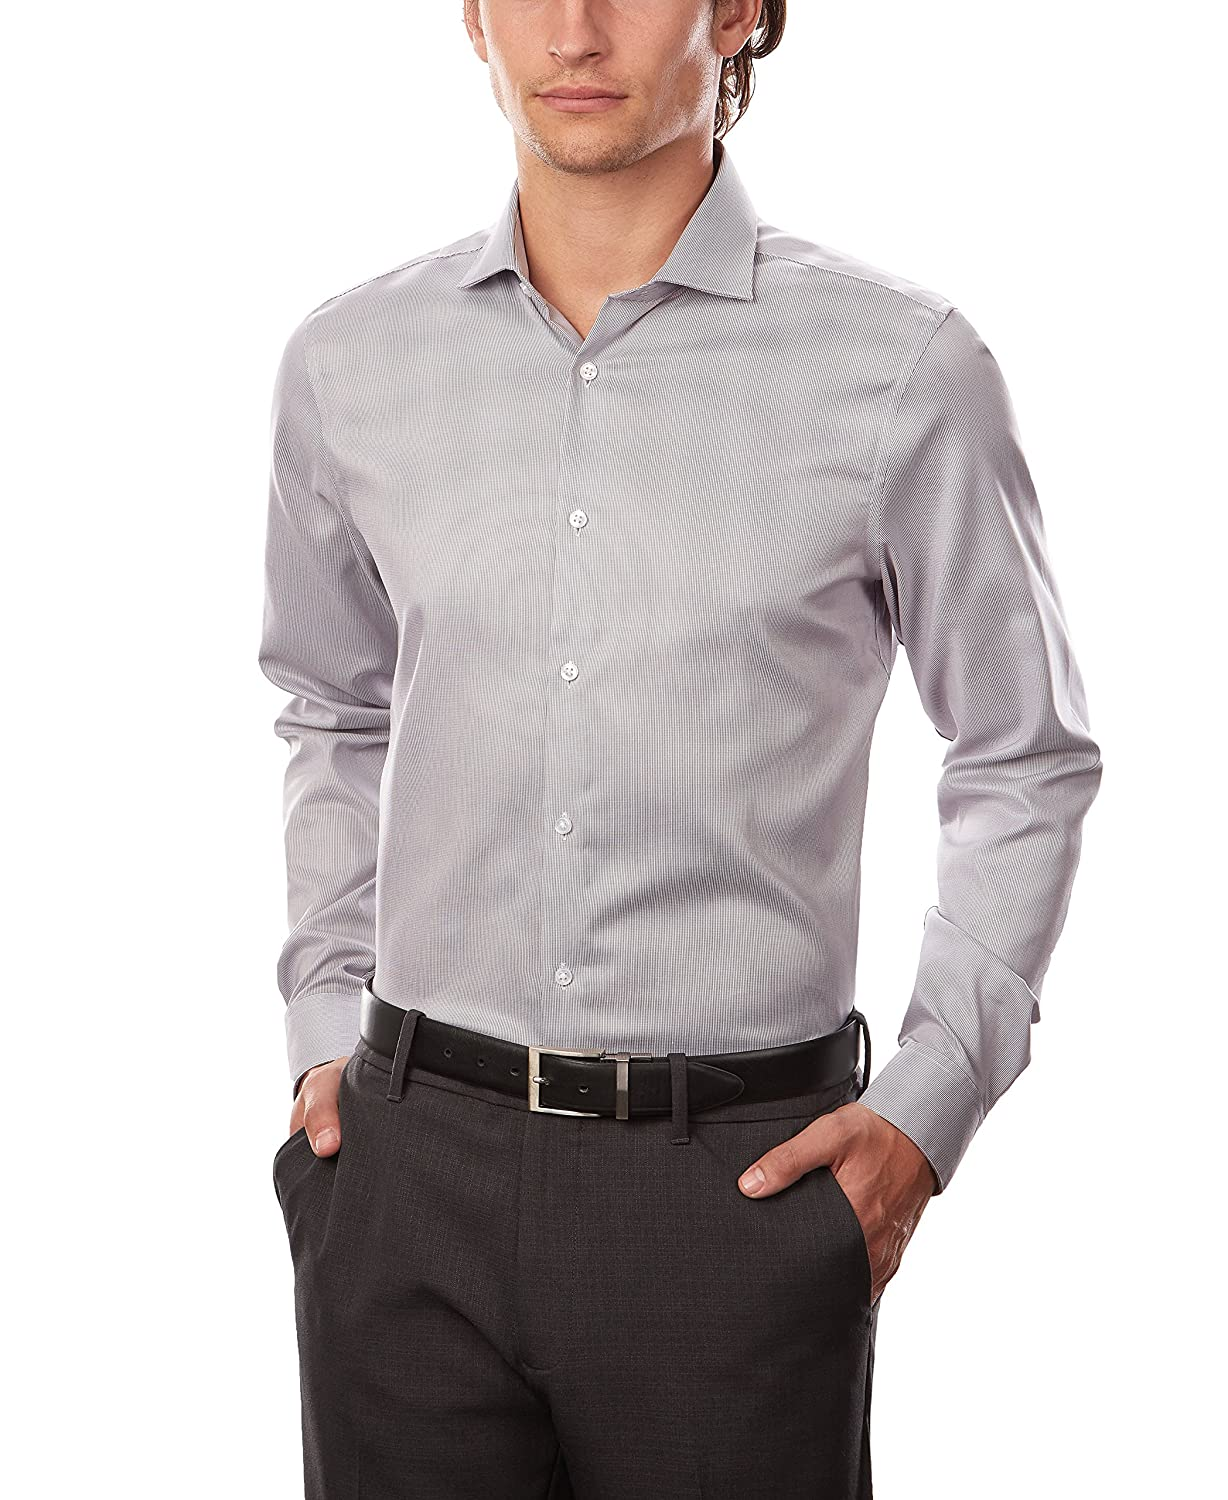 Difference Between Athletic Fit And Slim Fit Dress Shirts Joe Maloy